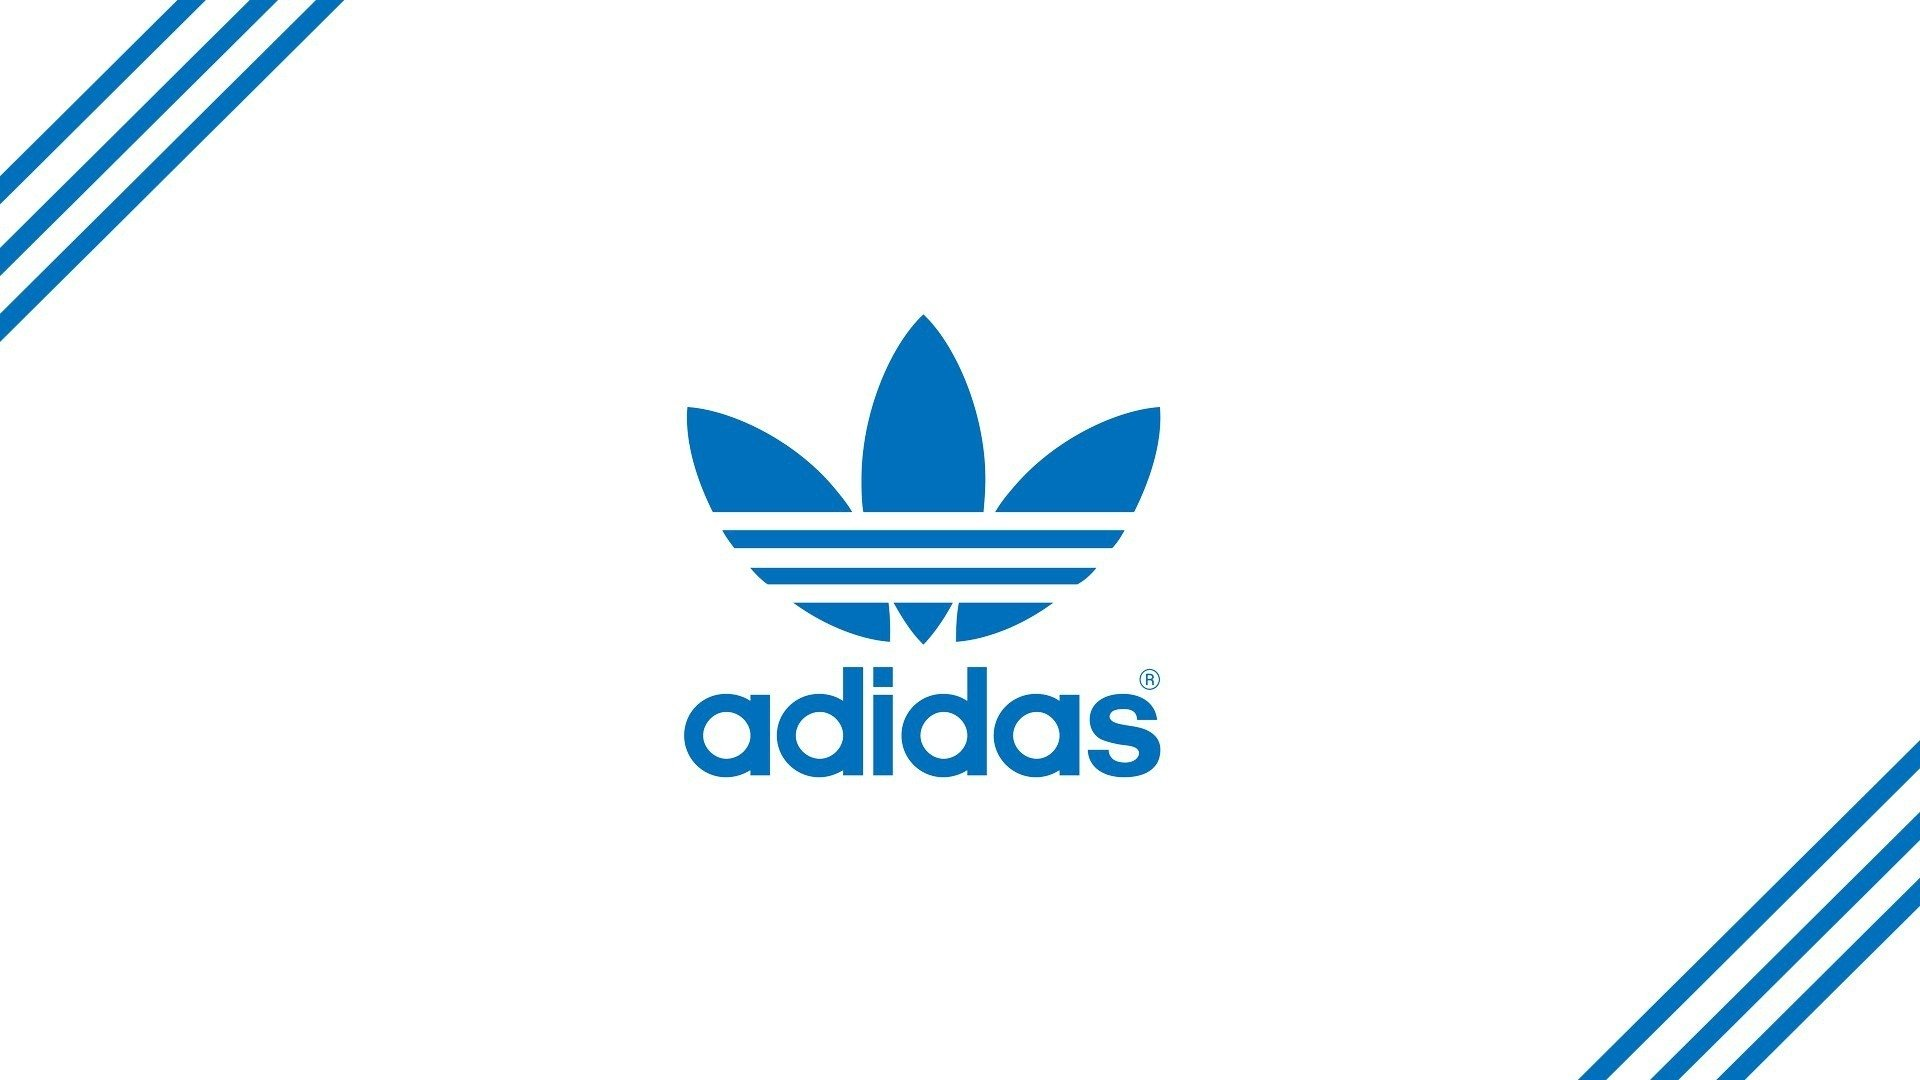 adidas logo hd photos